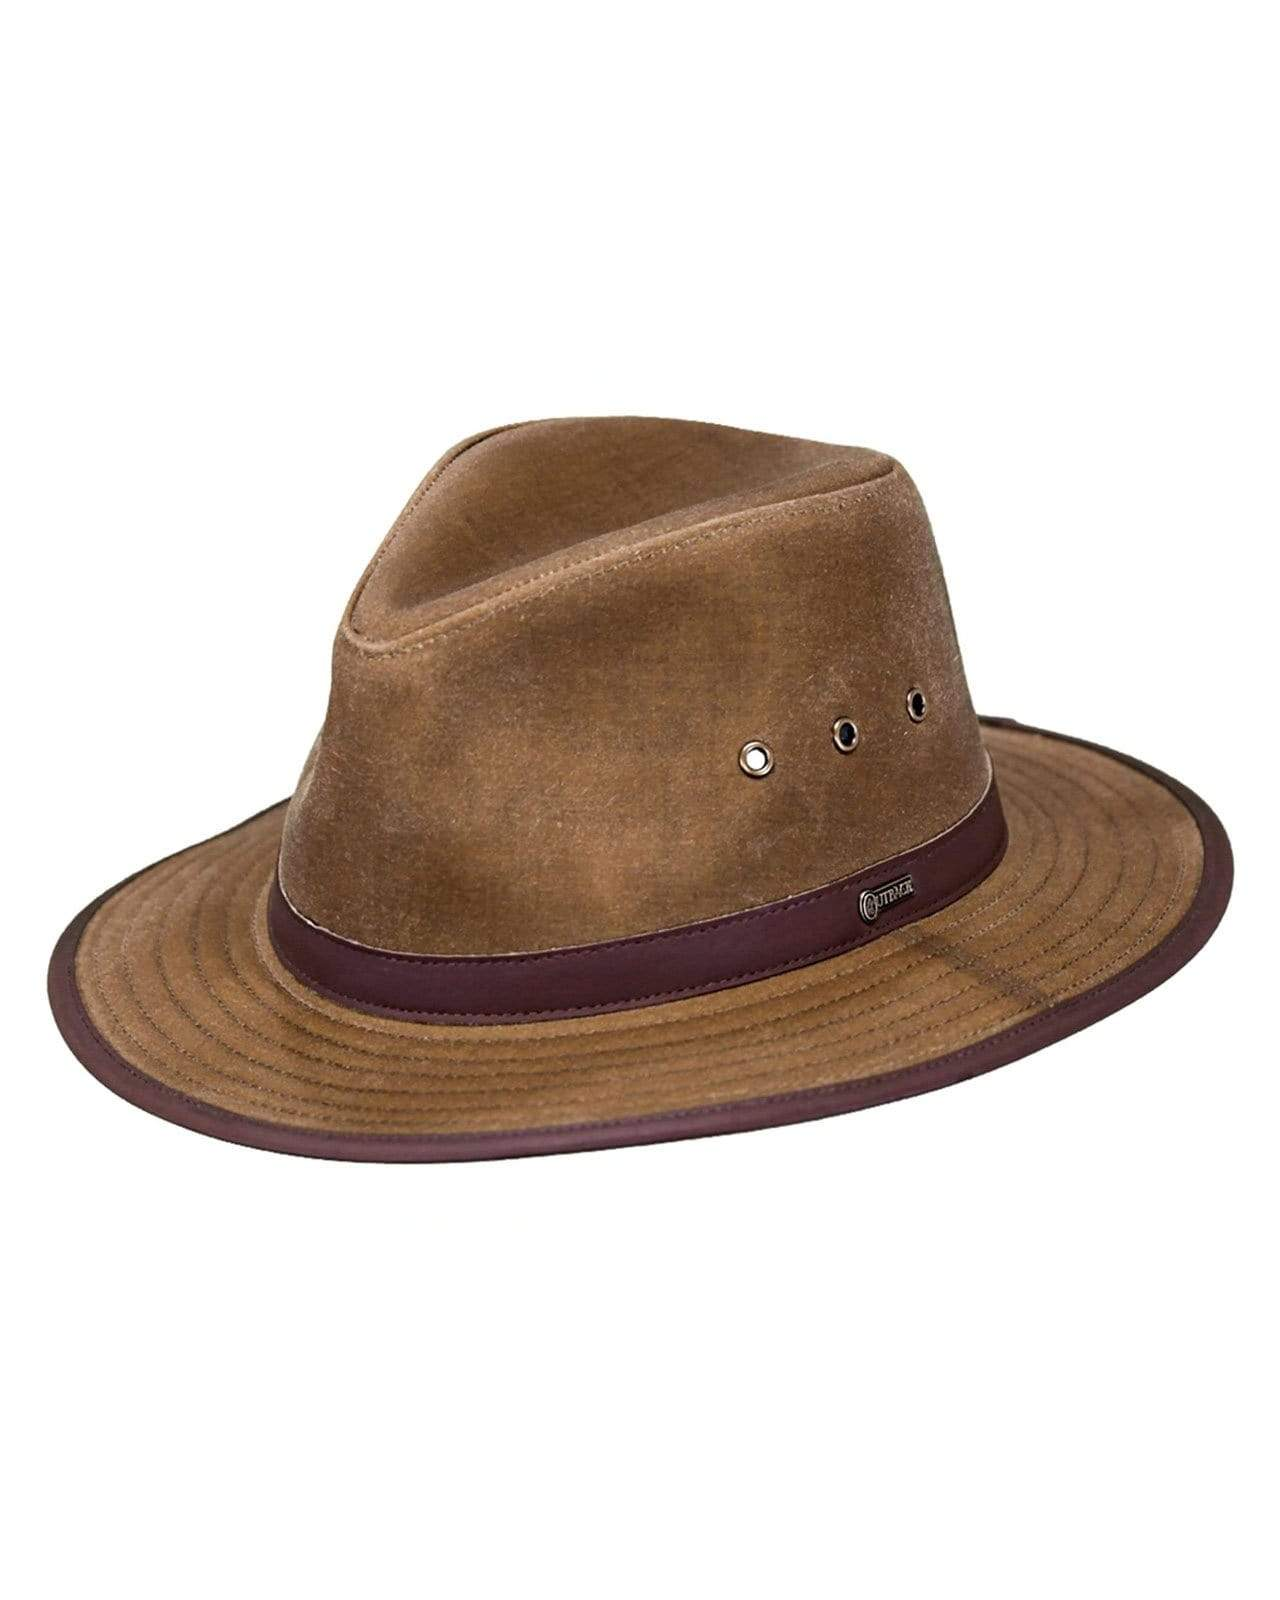 Outback Trading Company Madison River Oilskin Hat FIELD TAN / SM 1462-FTN-SM